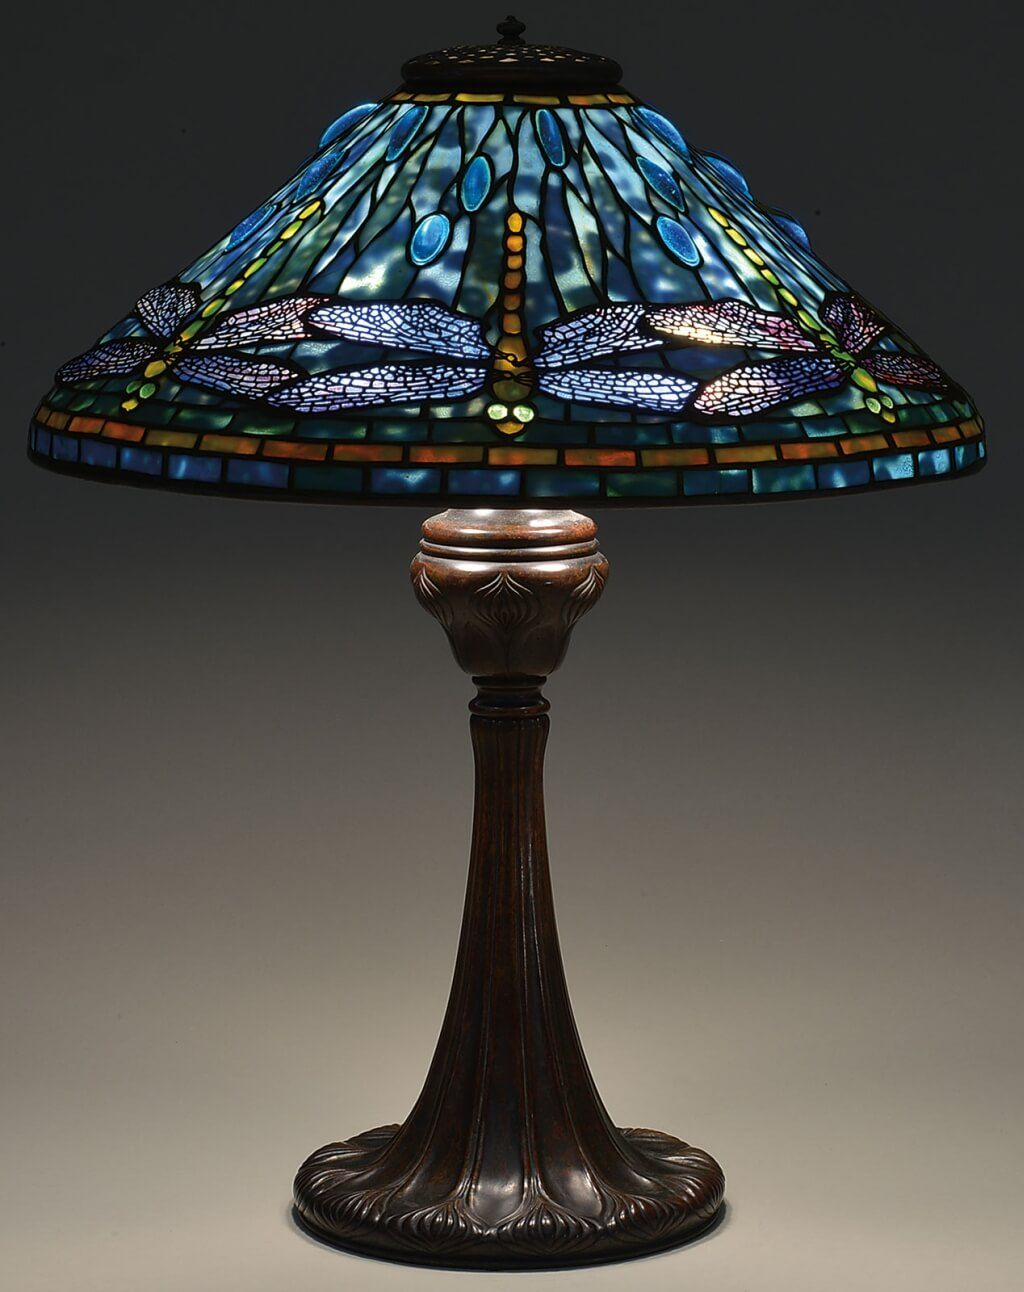 Adorable Blue Tiffany Lamps For Sale With Dragonfly Shade Design